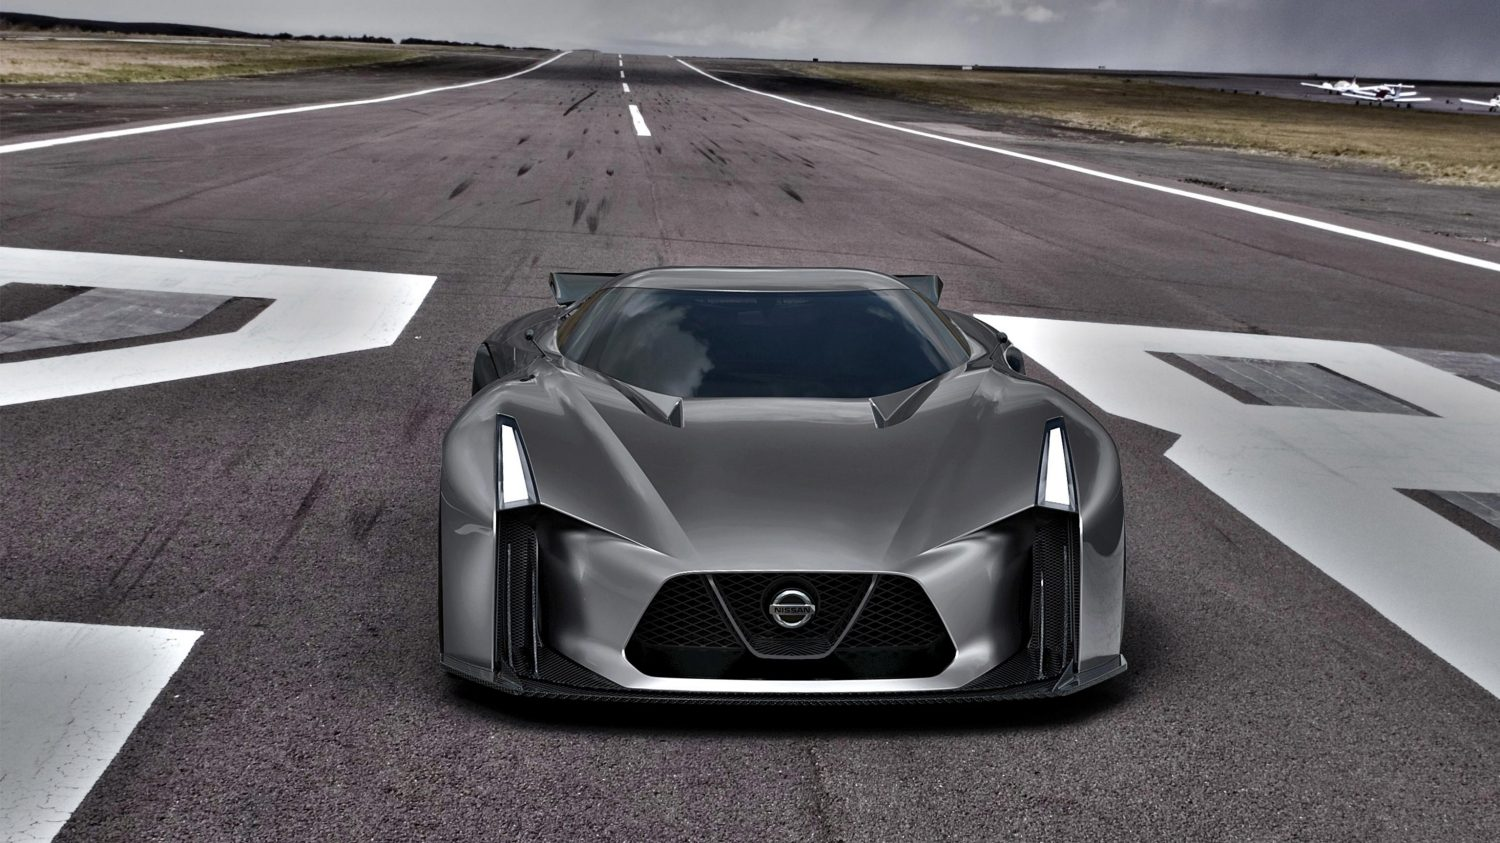 Experience Nissan – Konceptbil – 2020 Vision Gran Turismo – Set forfra